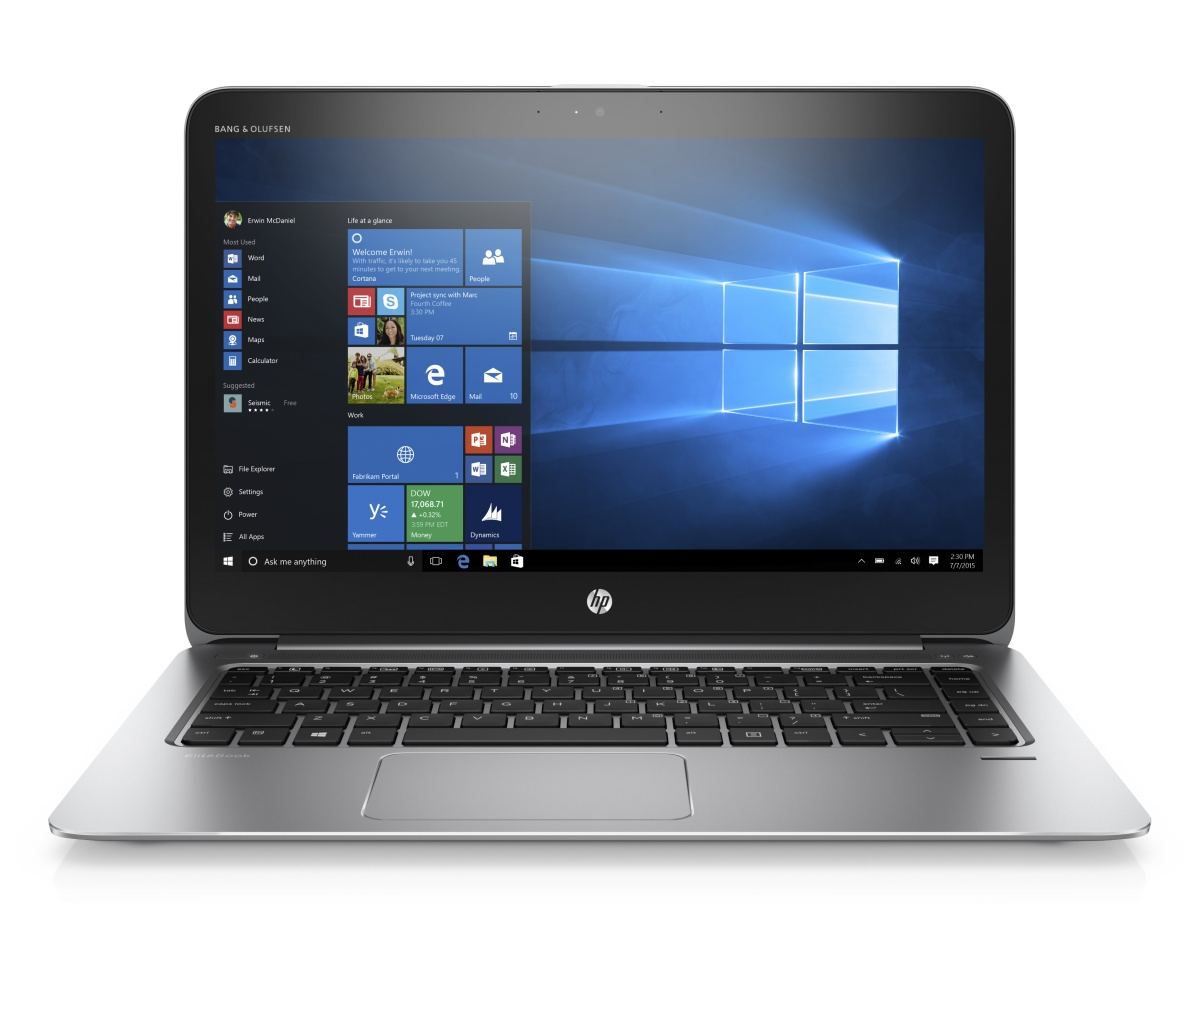 HP EliteBook Folio 1040 G3 i7-6500U /8 GB/512GB SSD/14'' FHD privacy filter/ NFC, RJ45-VGA adapt / Win 10 Pro